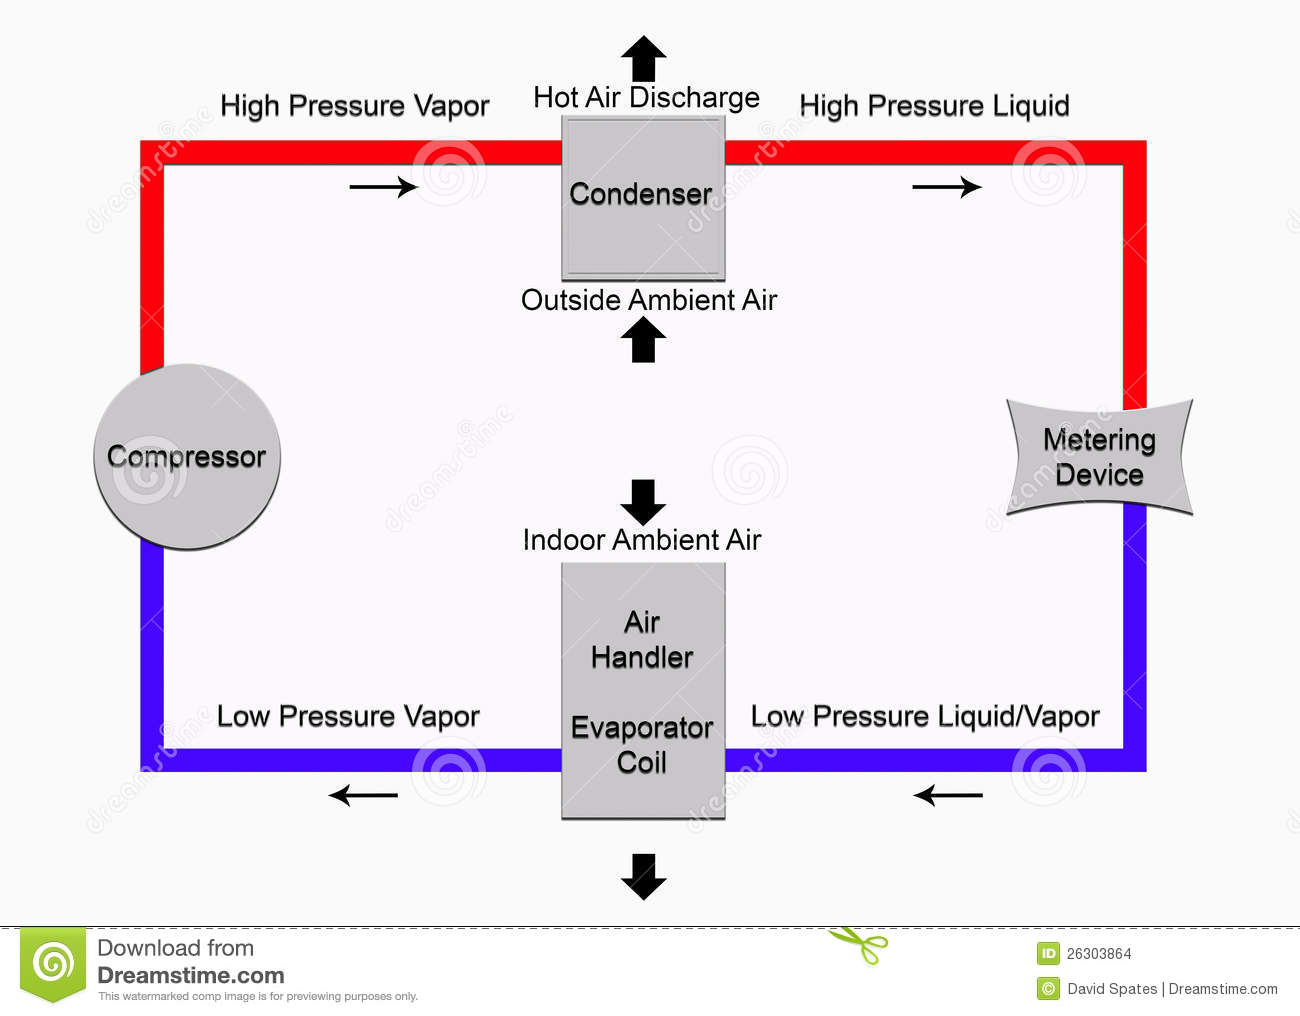 HVAC – The Refrigeration Cycle